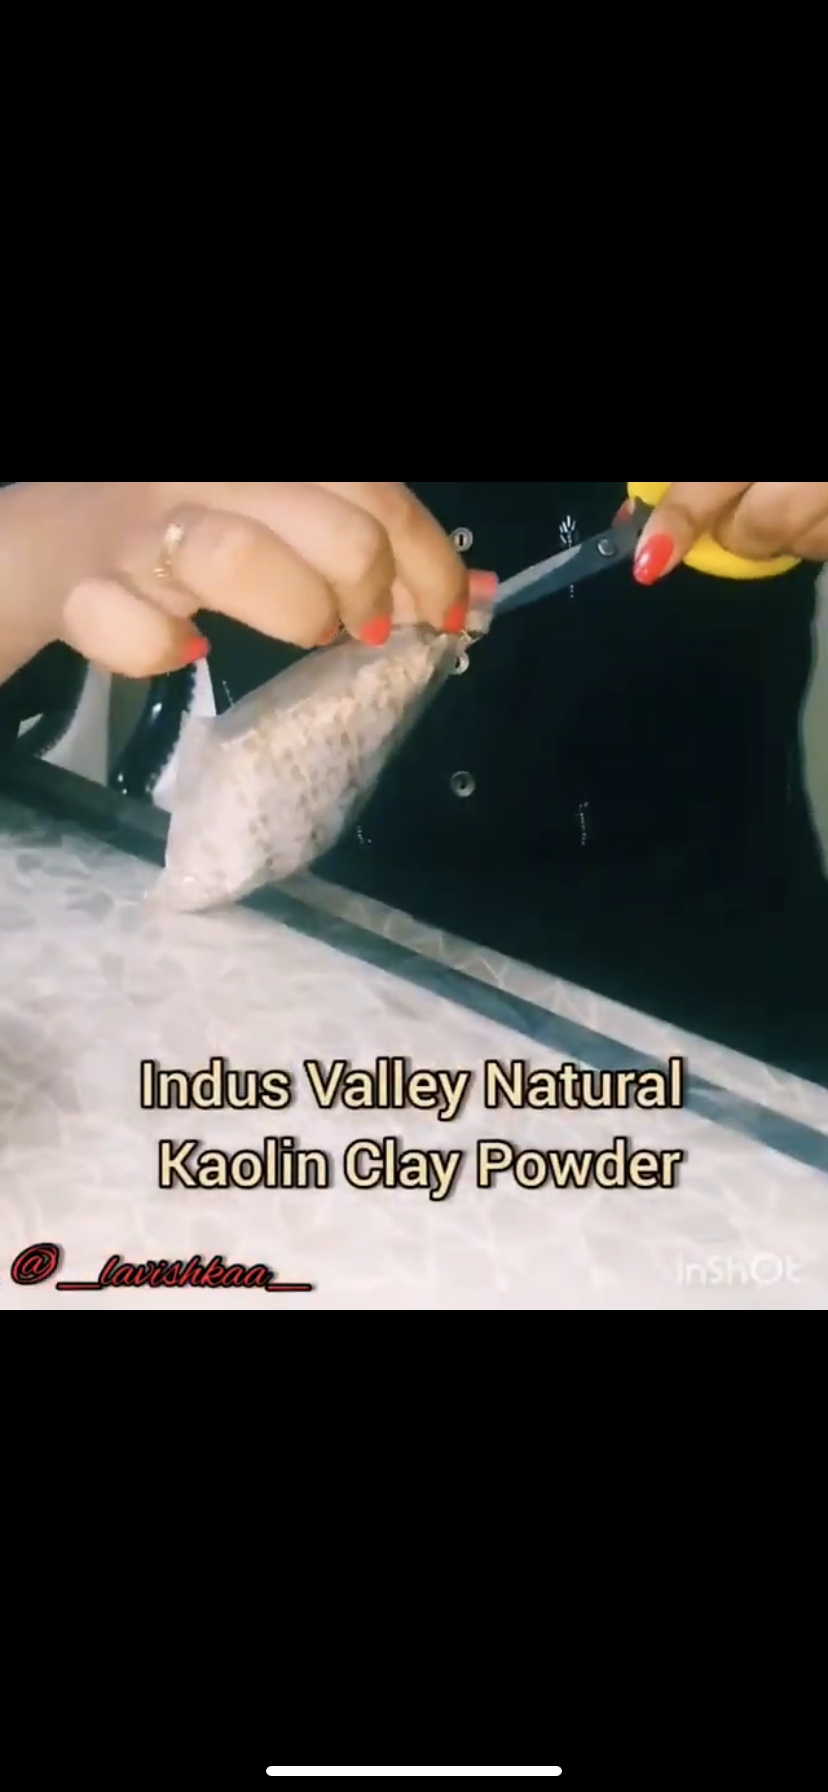 Indus Valley Natural Kaolin Clay Powder For Acne, Blackheads And For Glowing Skin-Taking care of the skin.-By lavishkaa-2